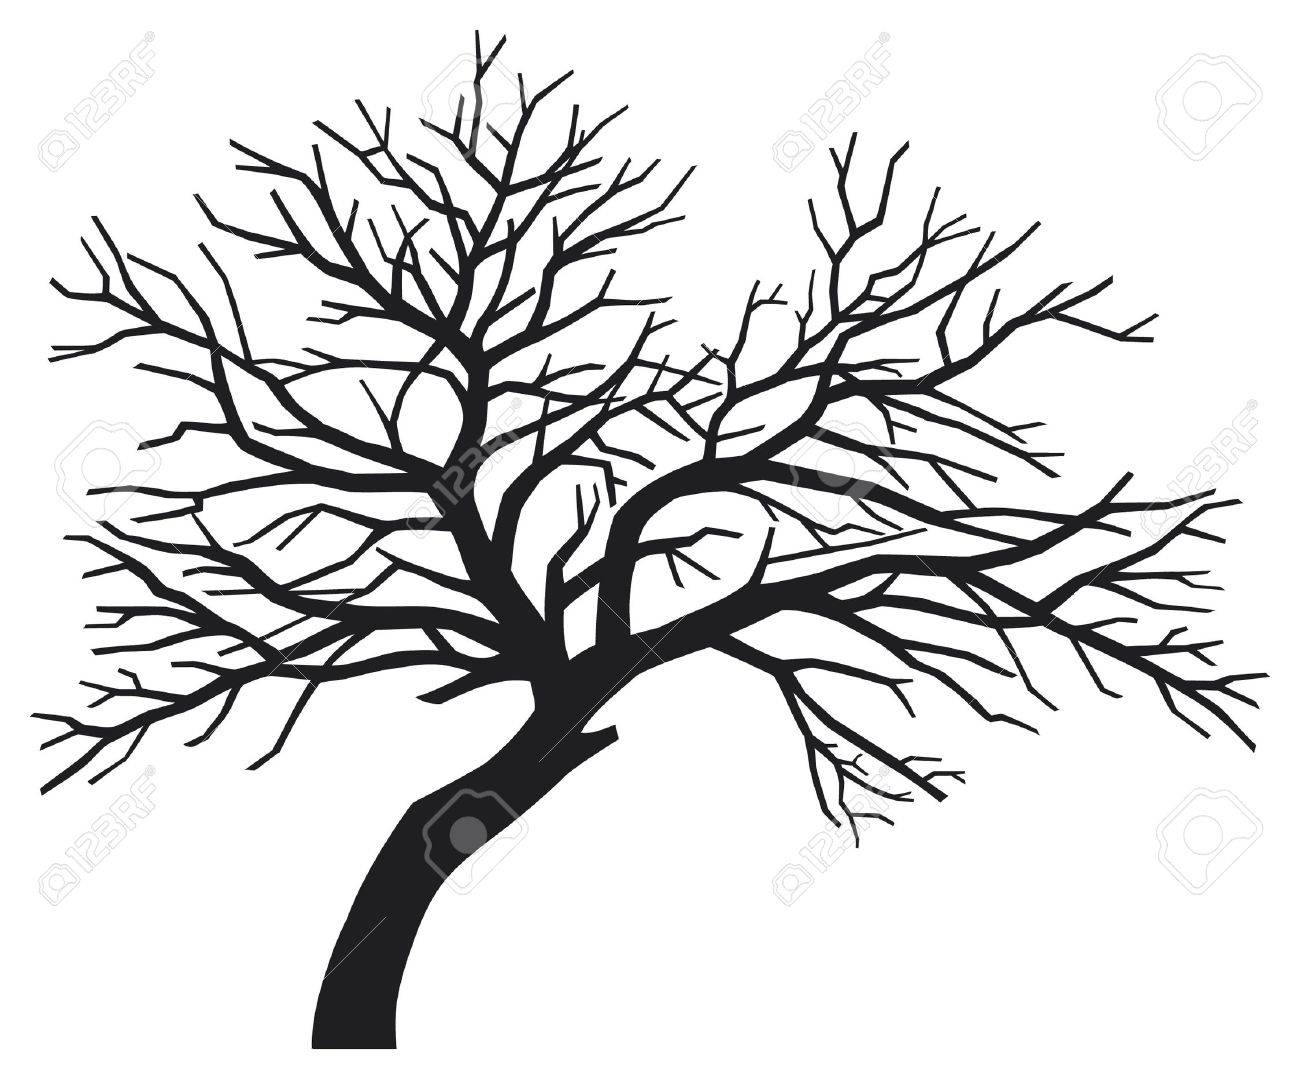 Scary Bare Black Tree Silhouette Tree Without Leaves Tree Silhouette Royalty Free Cliparts Vectors And Stock Illustration Image 15840833